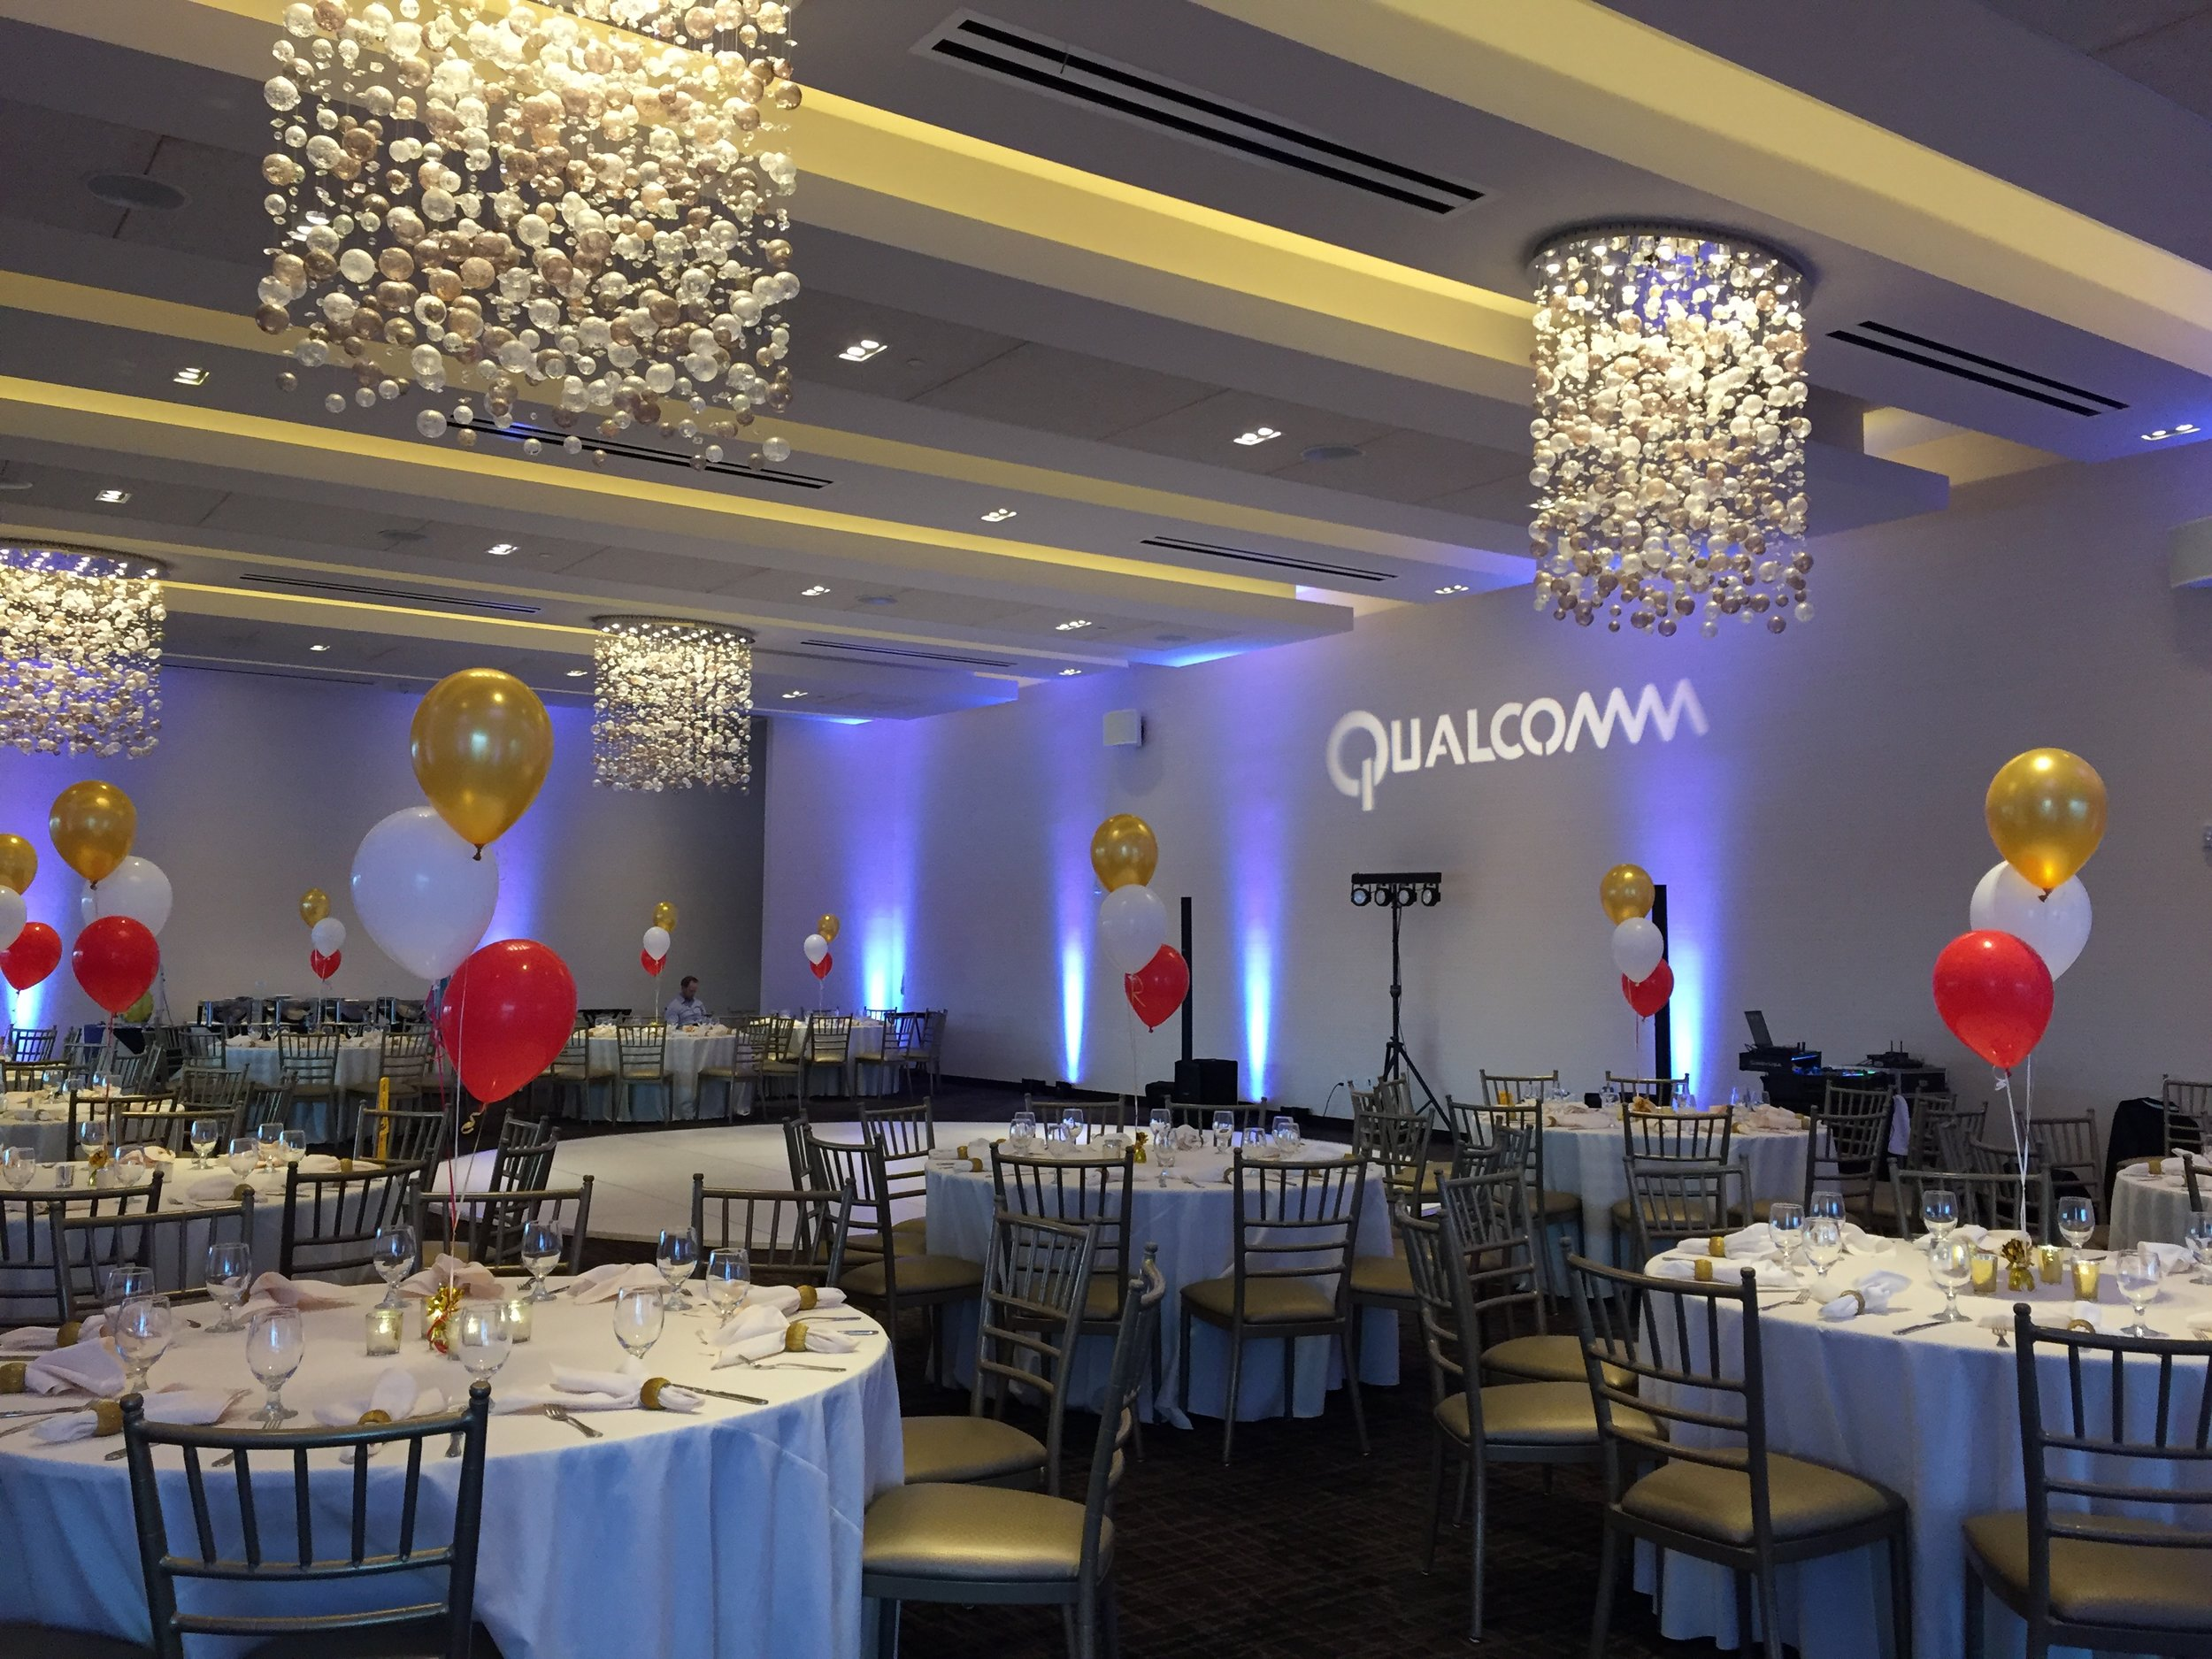 Coasterra was the venue for a holiday party attended by employees of Qualcomm.